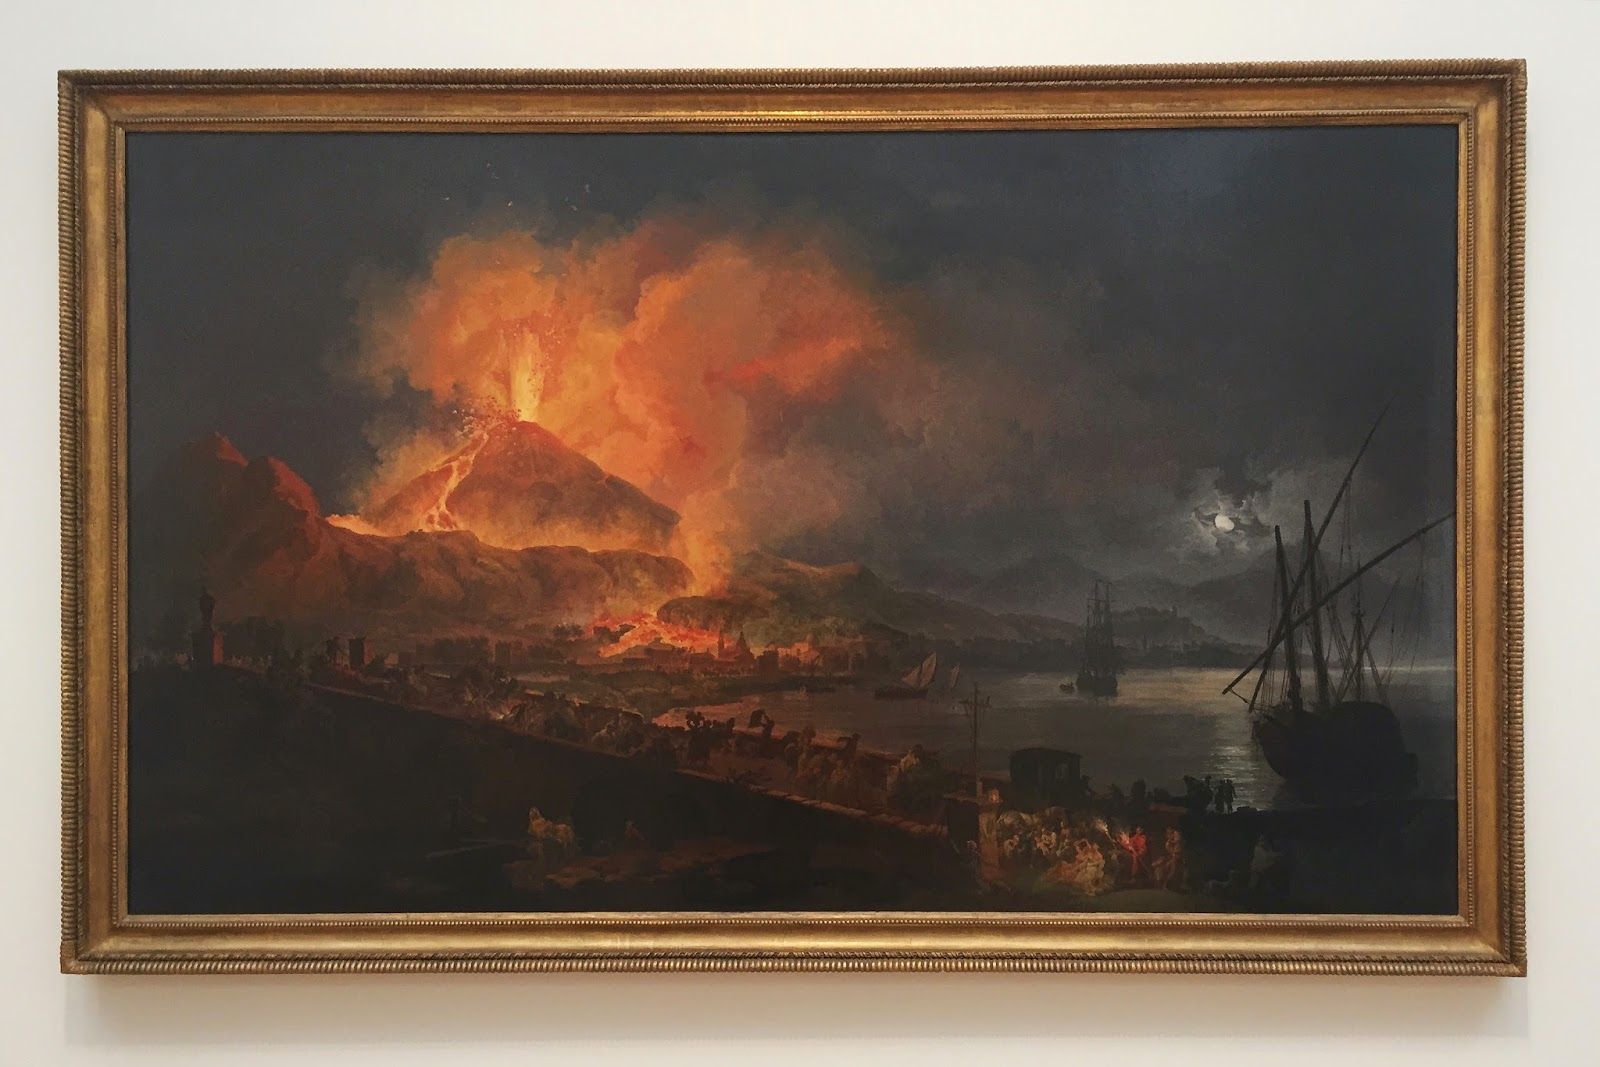 The Eruption of Mt. Vesuvius, Pierre-Jacques Volaire, oil on canvas, North Carolina Museum of Art, NCMA, Raleigh, North Carolina, things to do in Raleigh, things to go in North Carolina, art, art museum